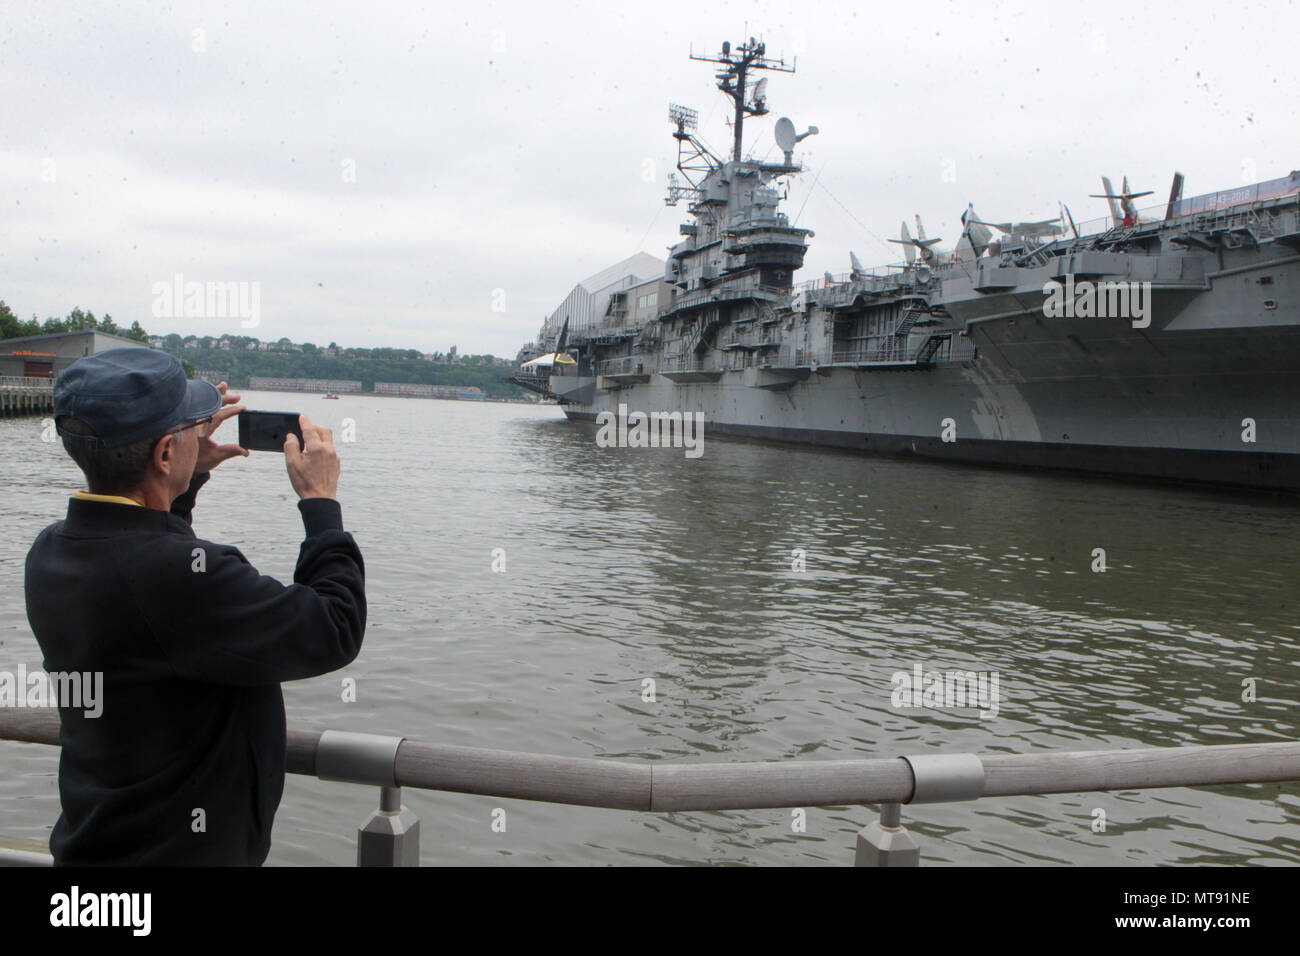 New York, NY, USA. 28th May, 2018. Atmosphere during the 2018 Memorial Day Ceremony held aboard the U.S.S Intrepid Sea, Air, Space Museum Complex on May 28, 2018 in New York City. Credit: Mpi43/Media Punch/Alamy Live News - Stock Image